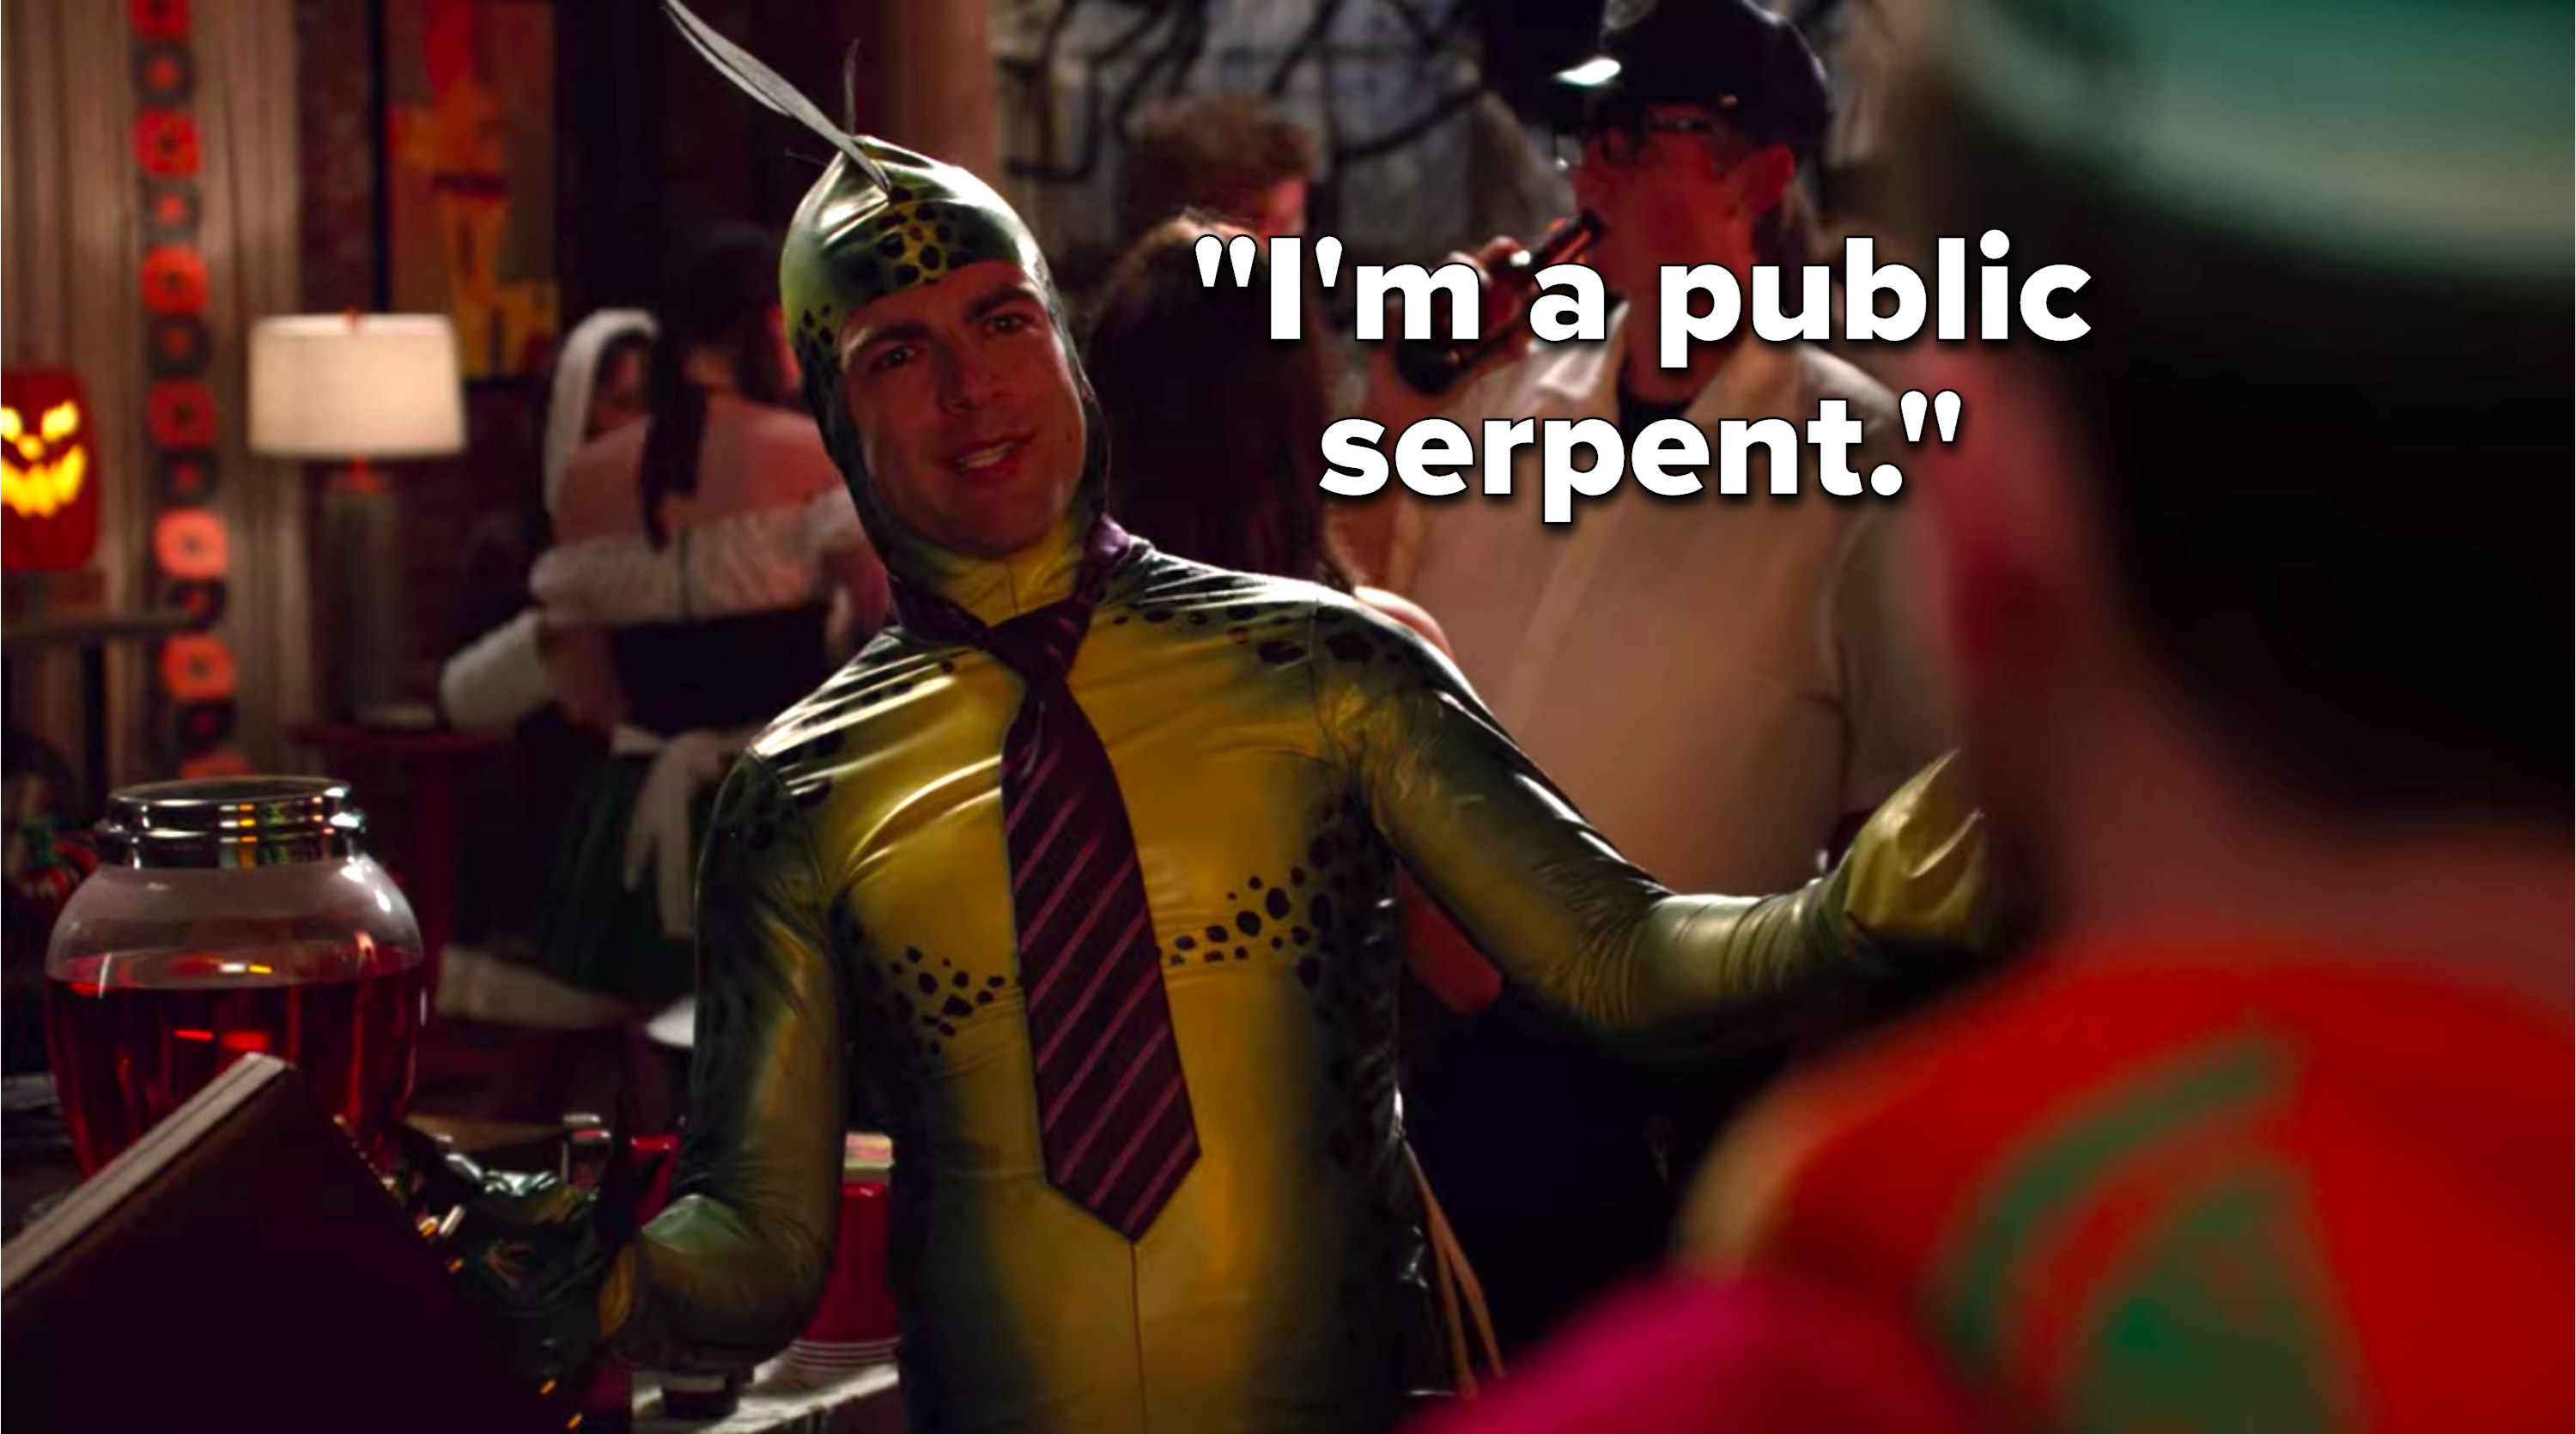 """Schmidt is dressed up in a snake costume with a tie and a briefcase and he says, """"I'm a public serpent"""""""